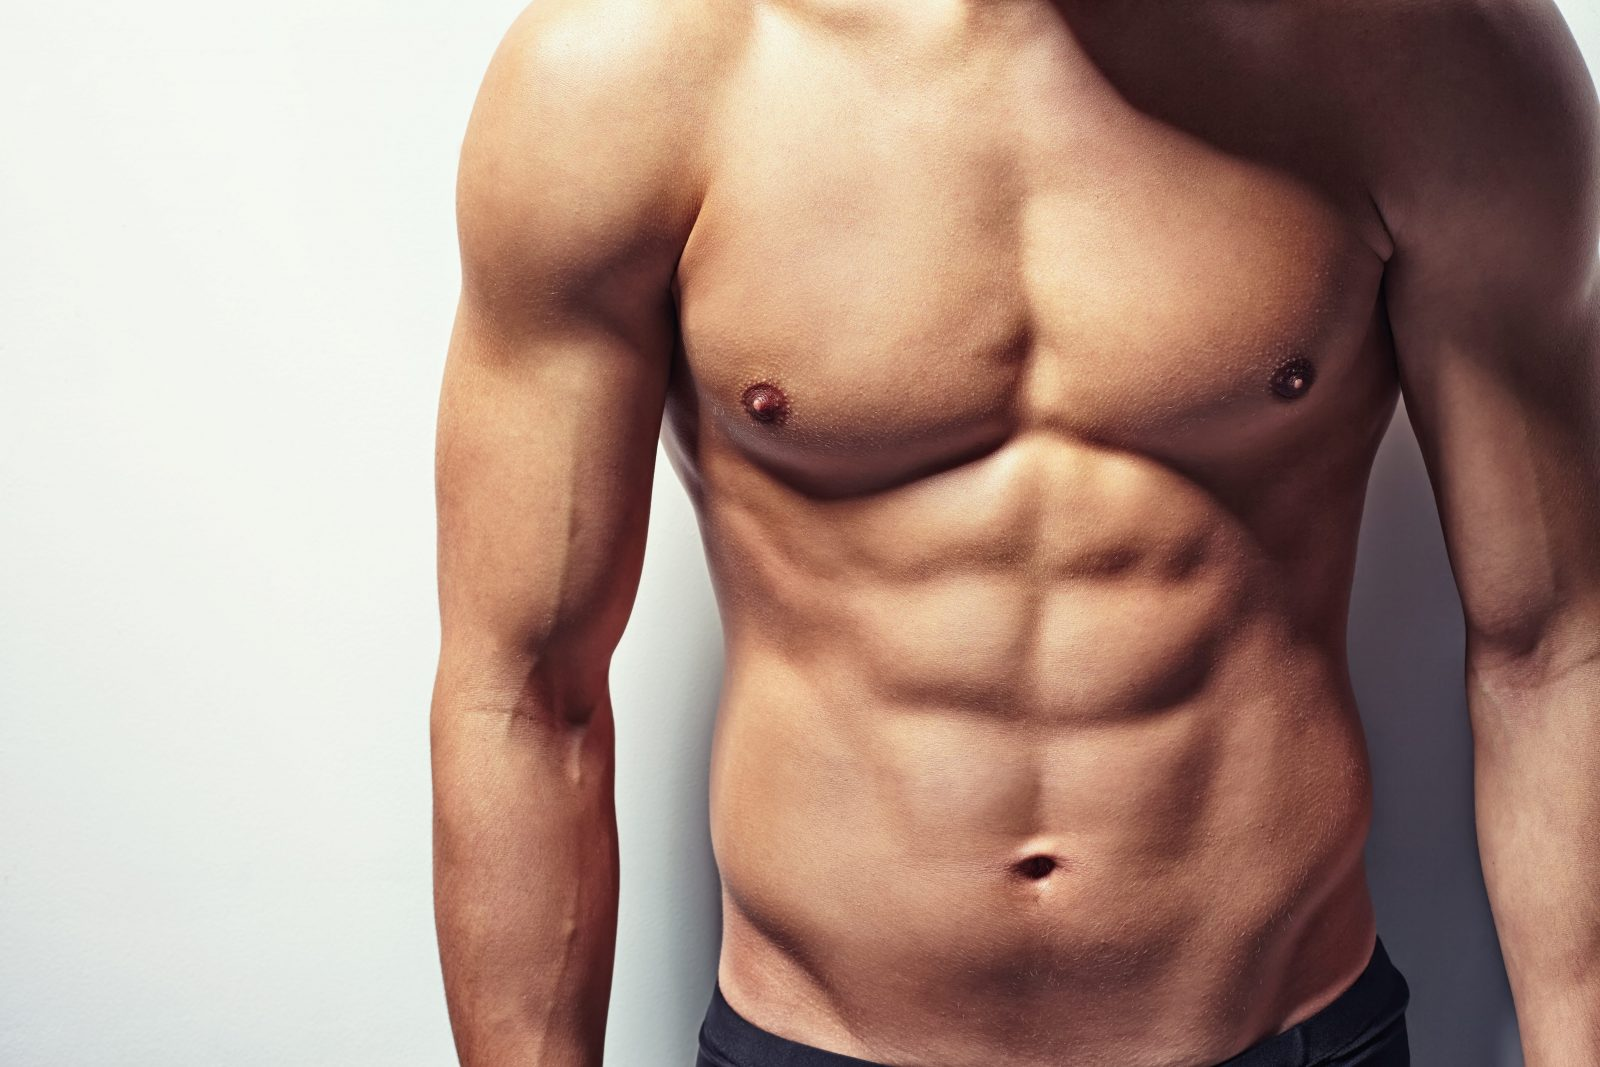 How to get sexy abs fast